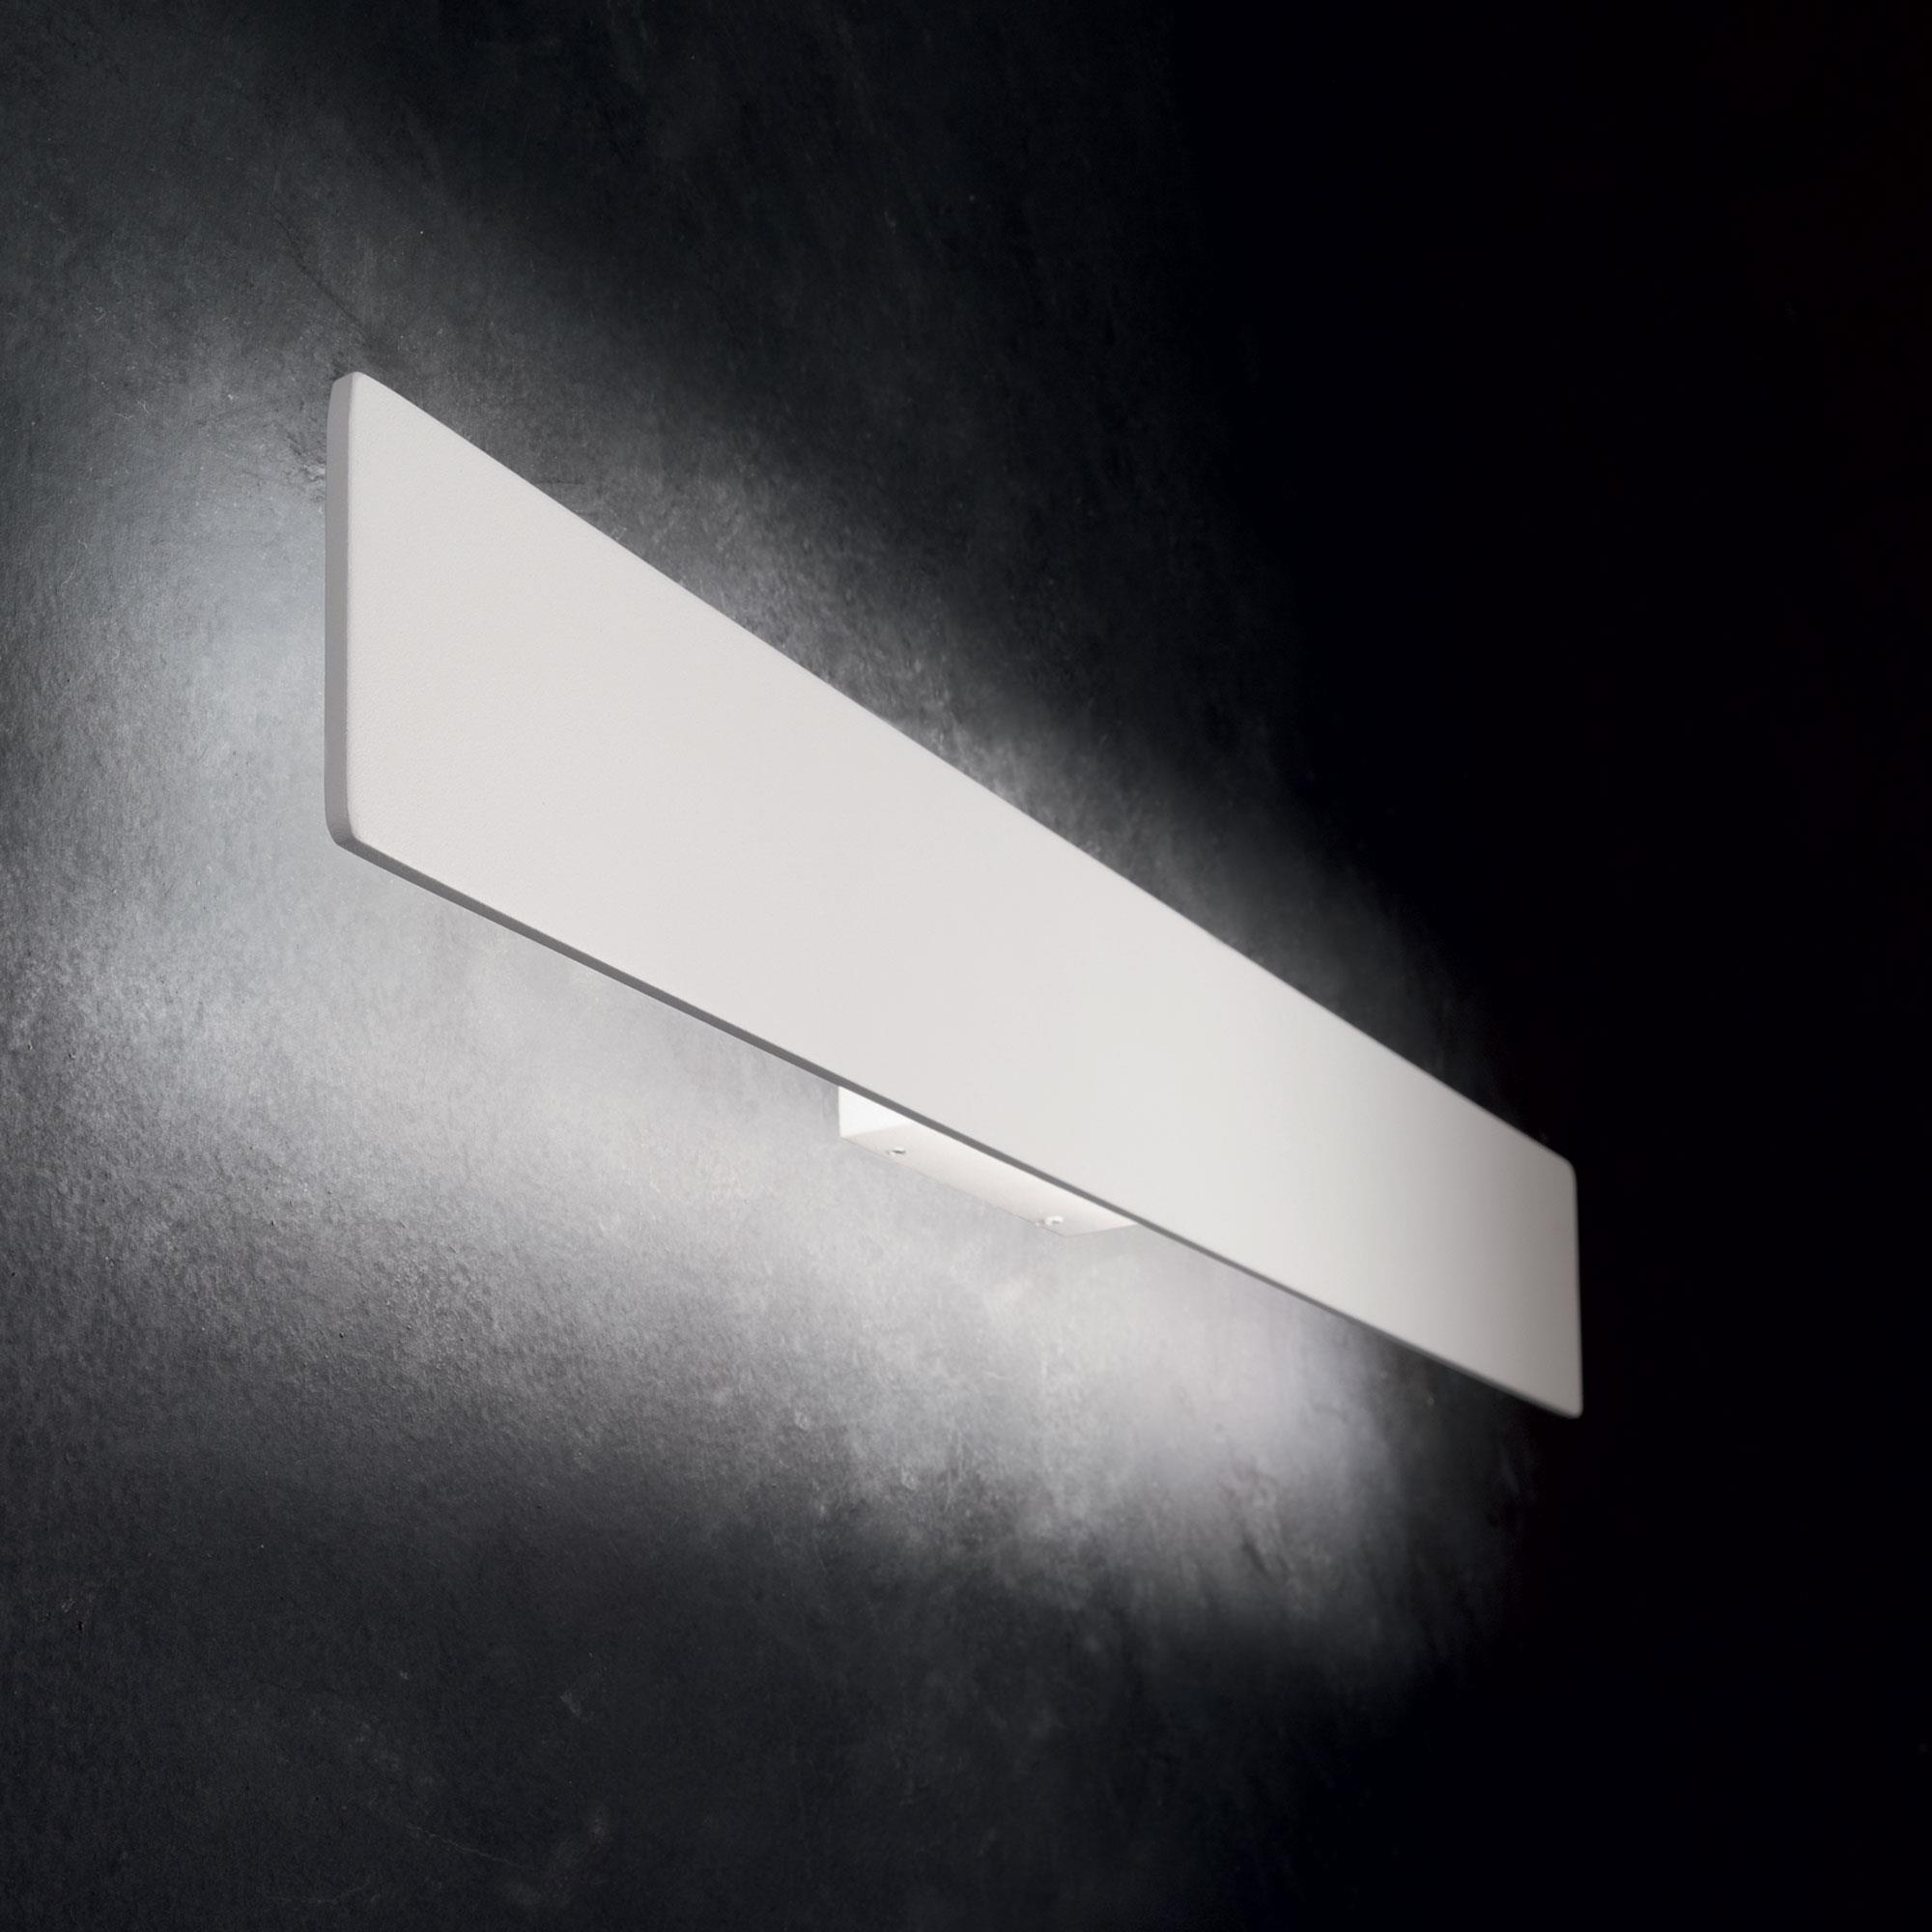 Ideal Lux 179308 ZIG ZAG AP22 BIANCO LED falilámpa